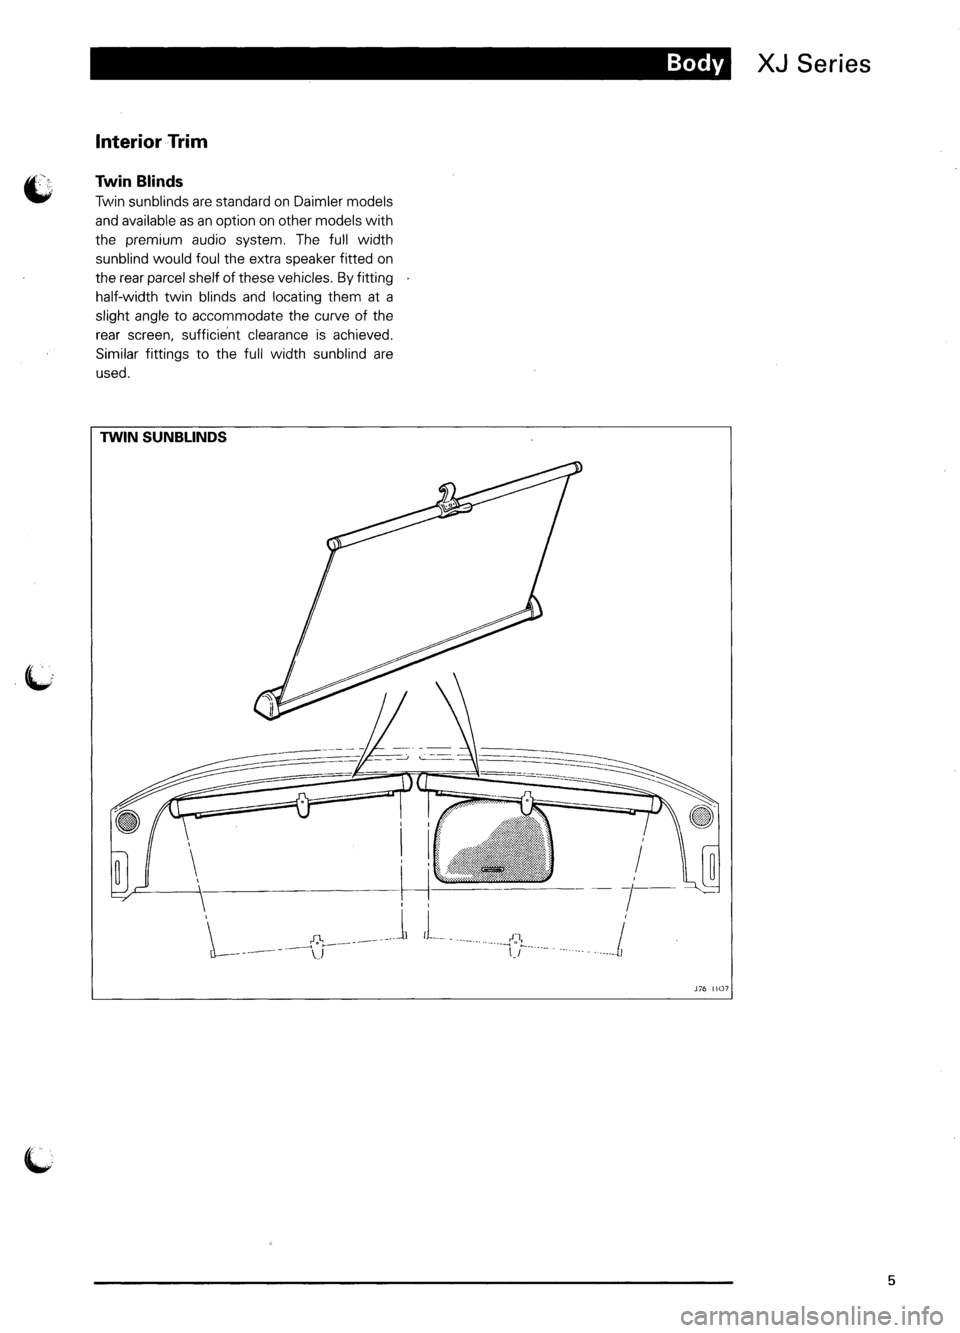 JAGUAR XJ6 1995 2.G Model Year Supplement Manual, Page 8